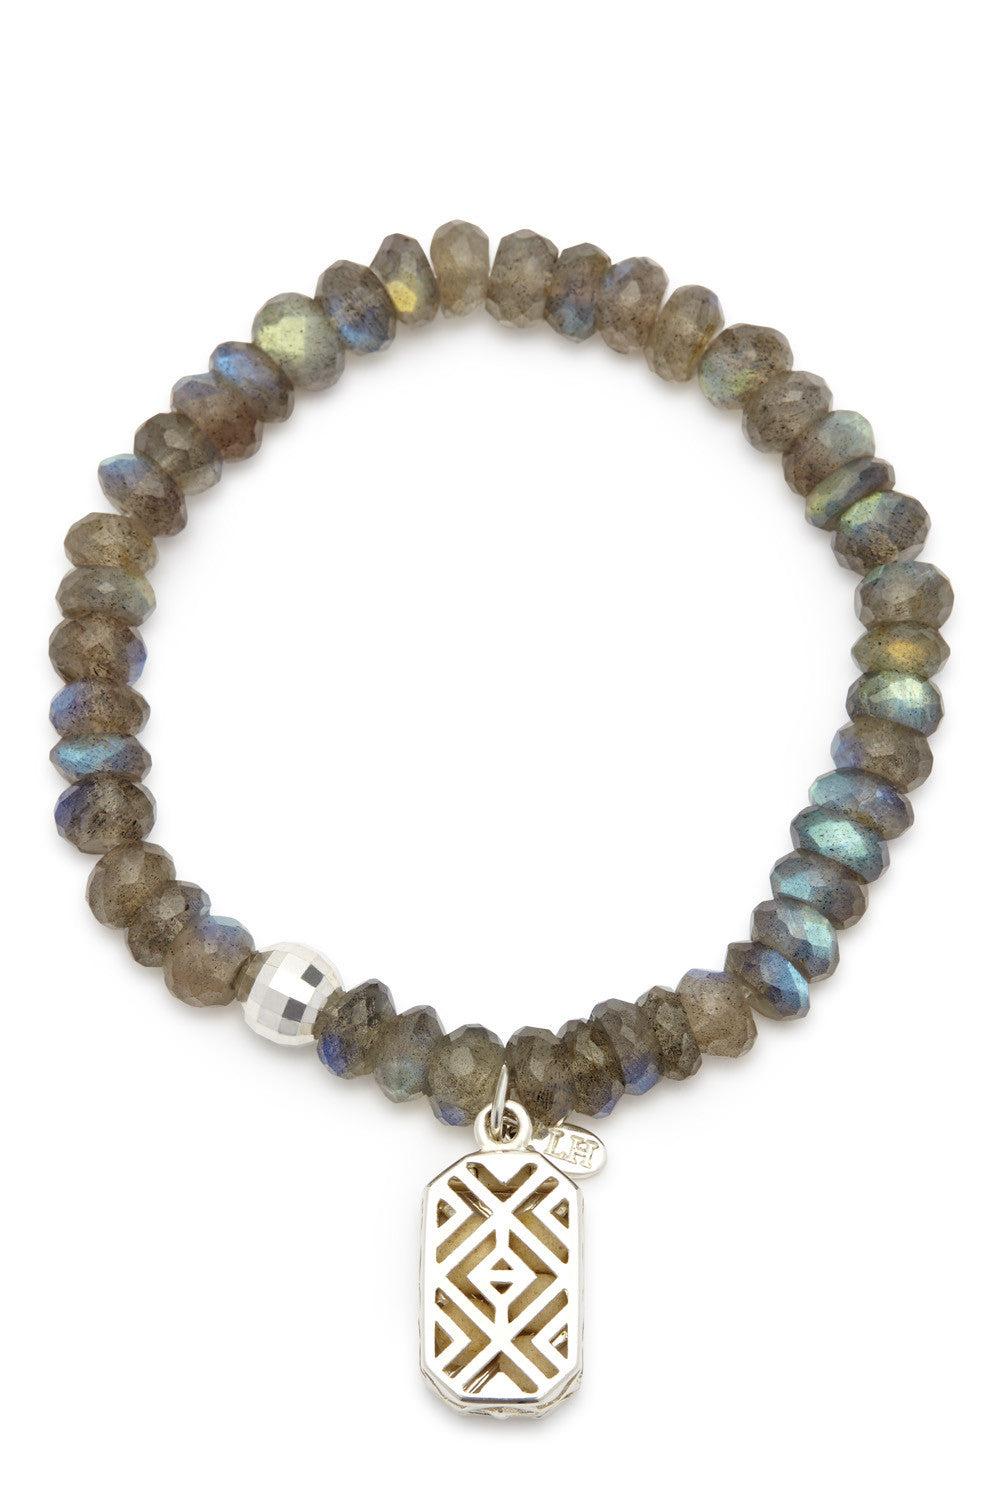 Chara Bracelet with Silver Voyager Charm